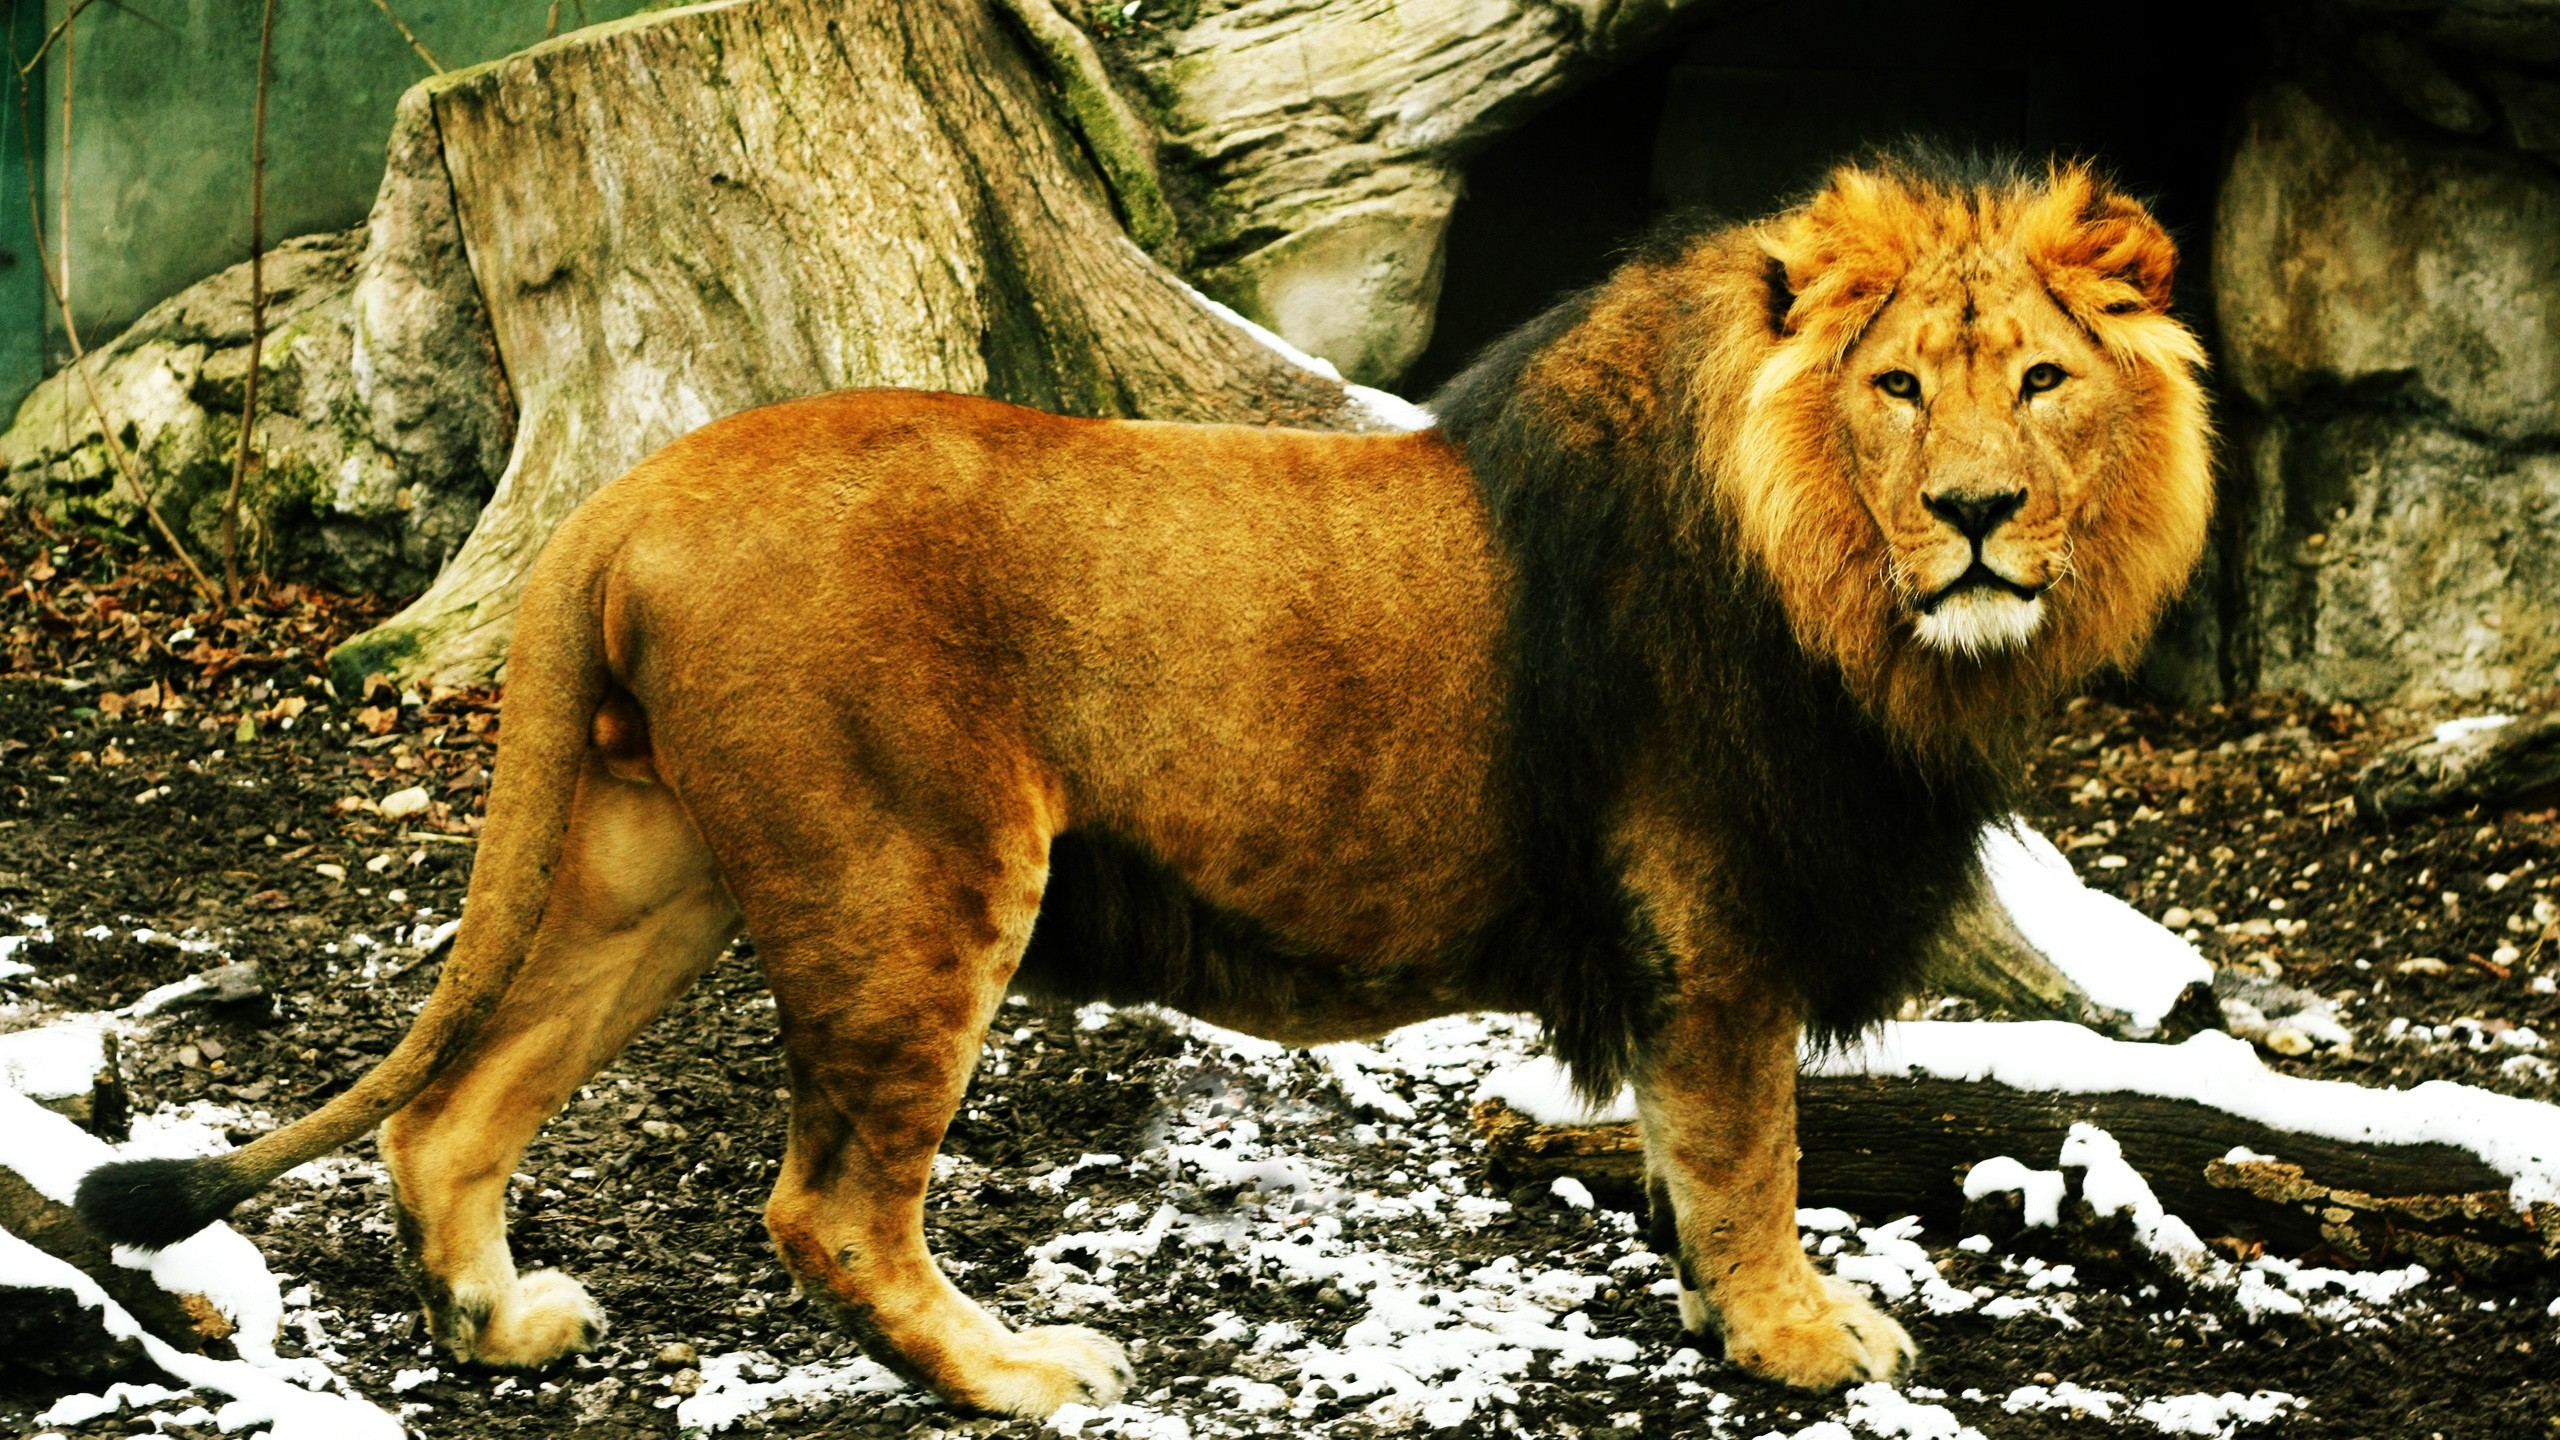 Lion Wallpapers - Lion Pic Full Hd , HD Wallpaper & Backgrounds